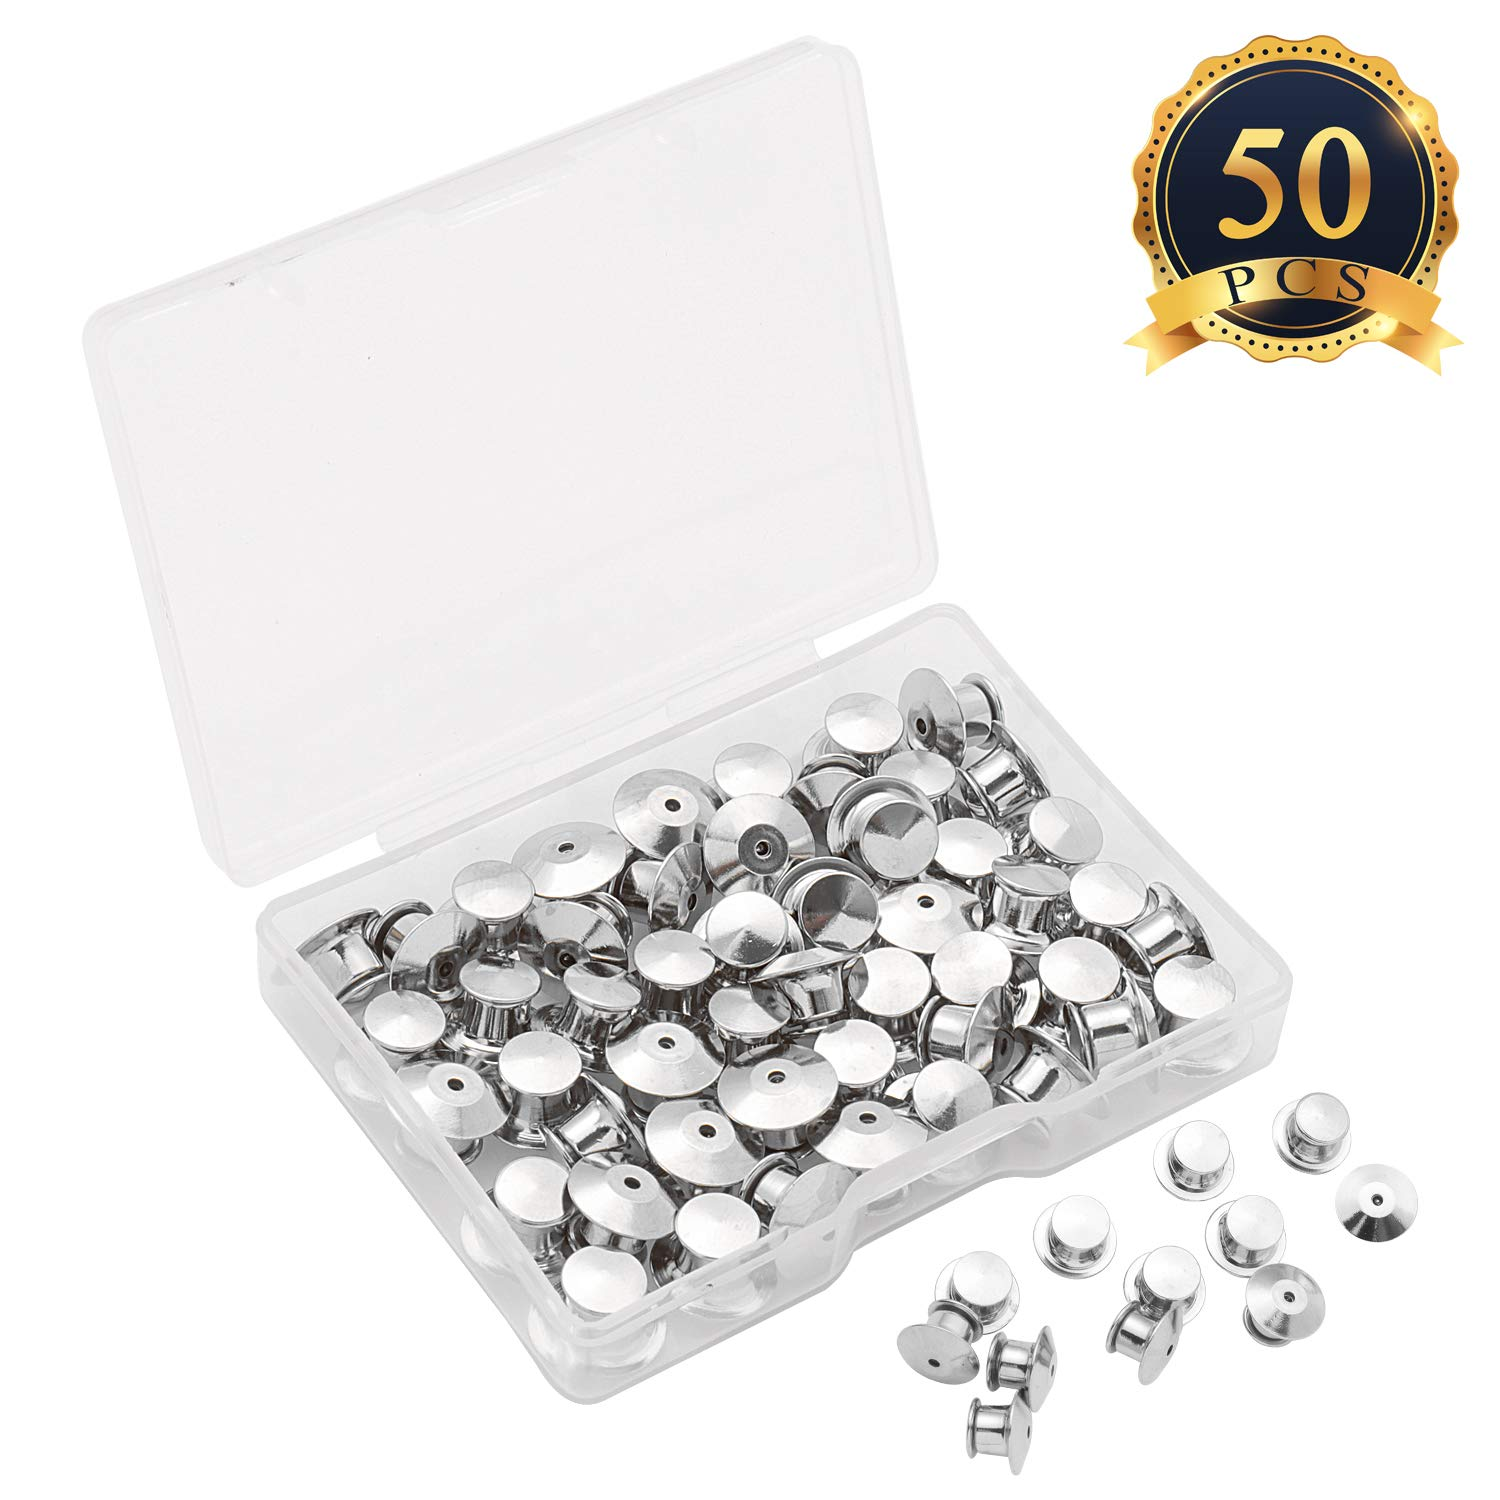 SUBANG 60 Pieces Metal Pin Backs Locking Pin Keepers Locking Clasp with Storage Case